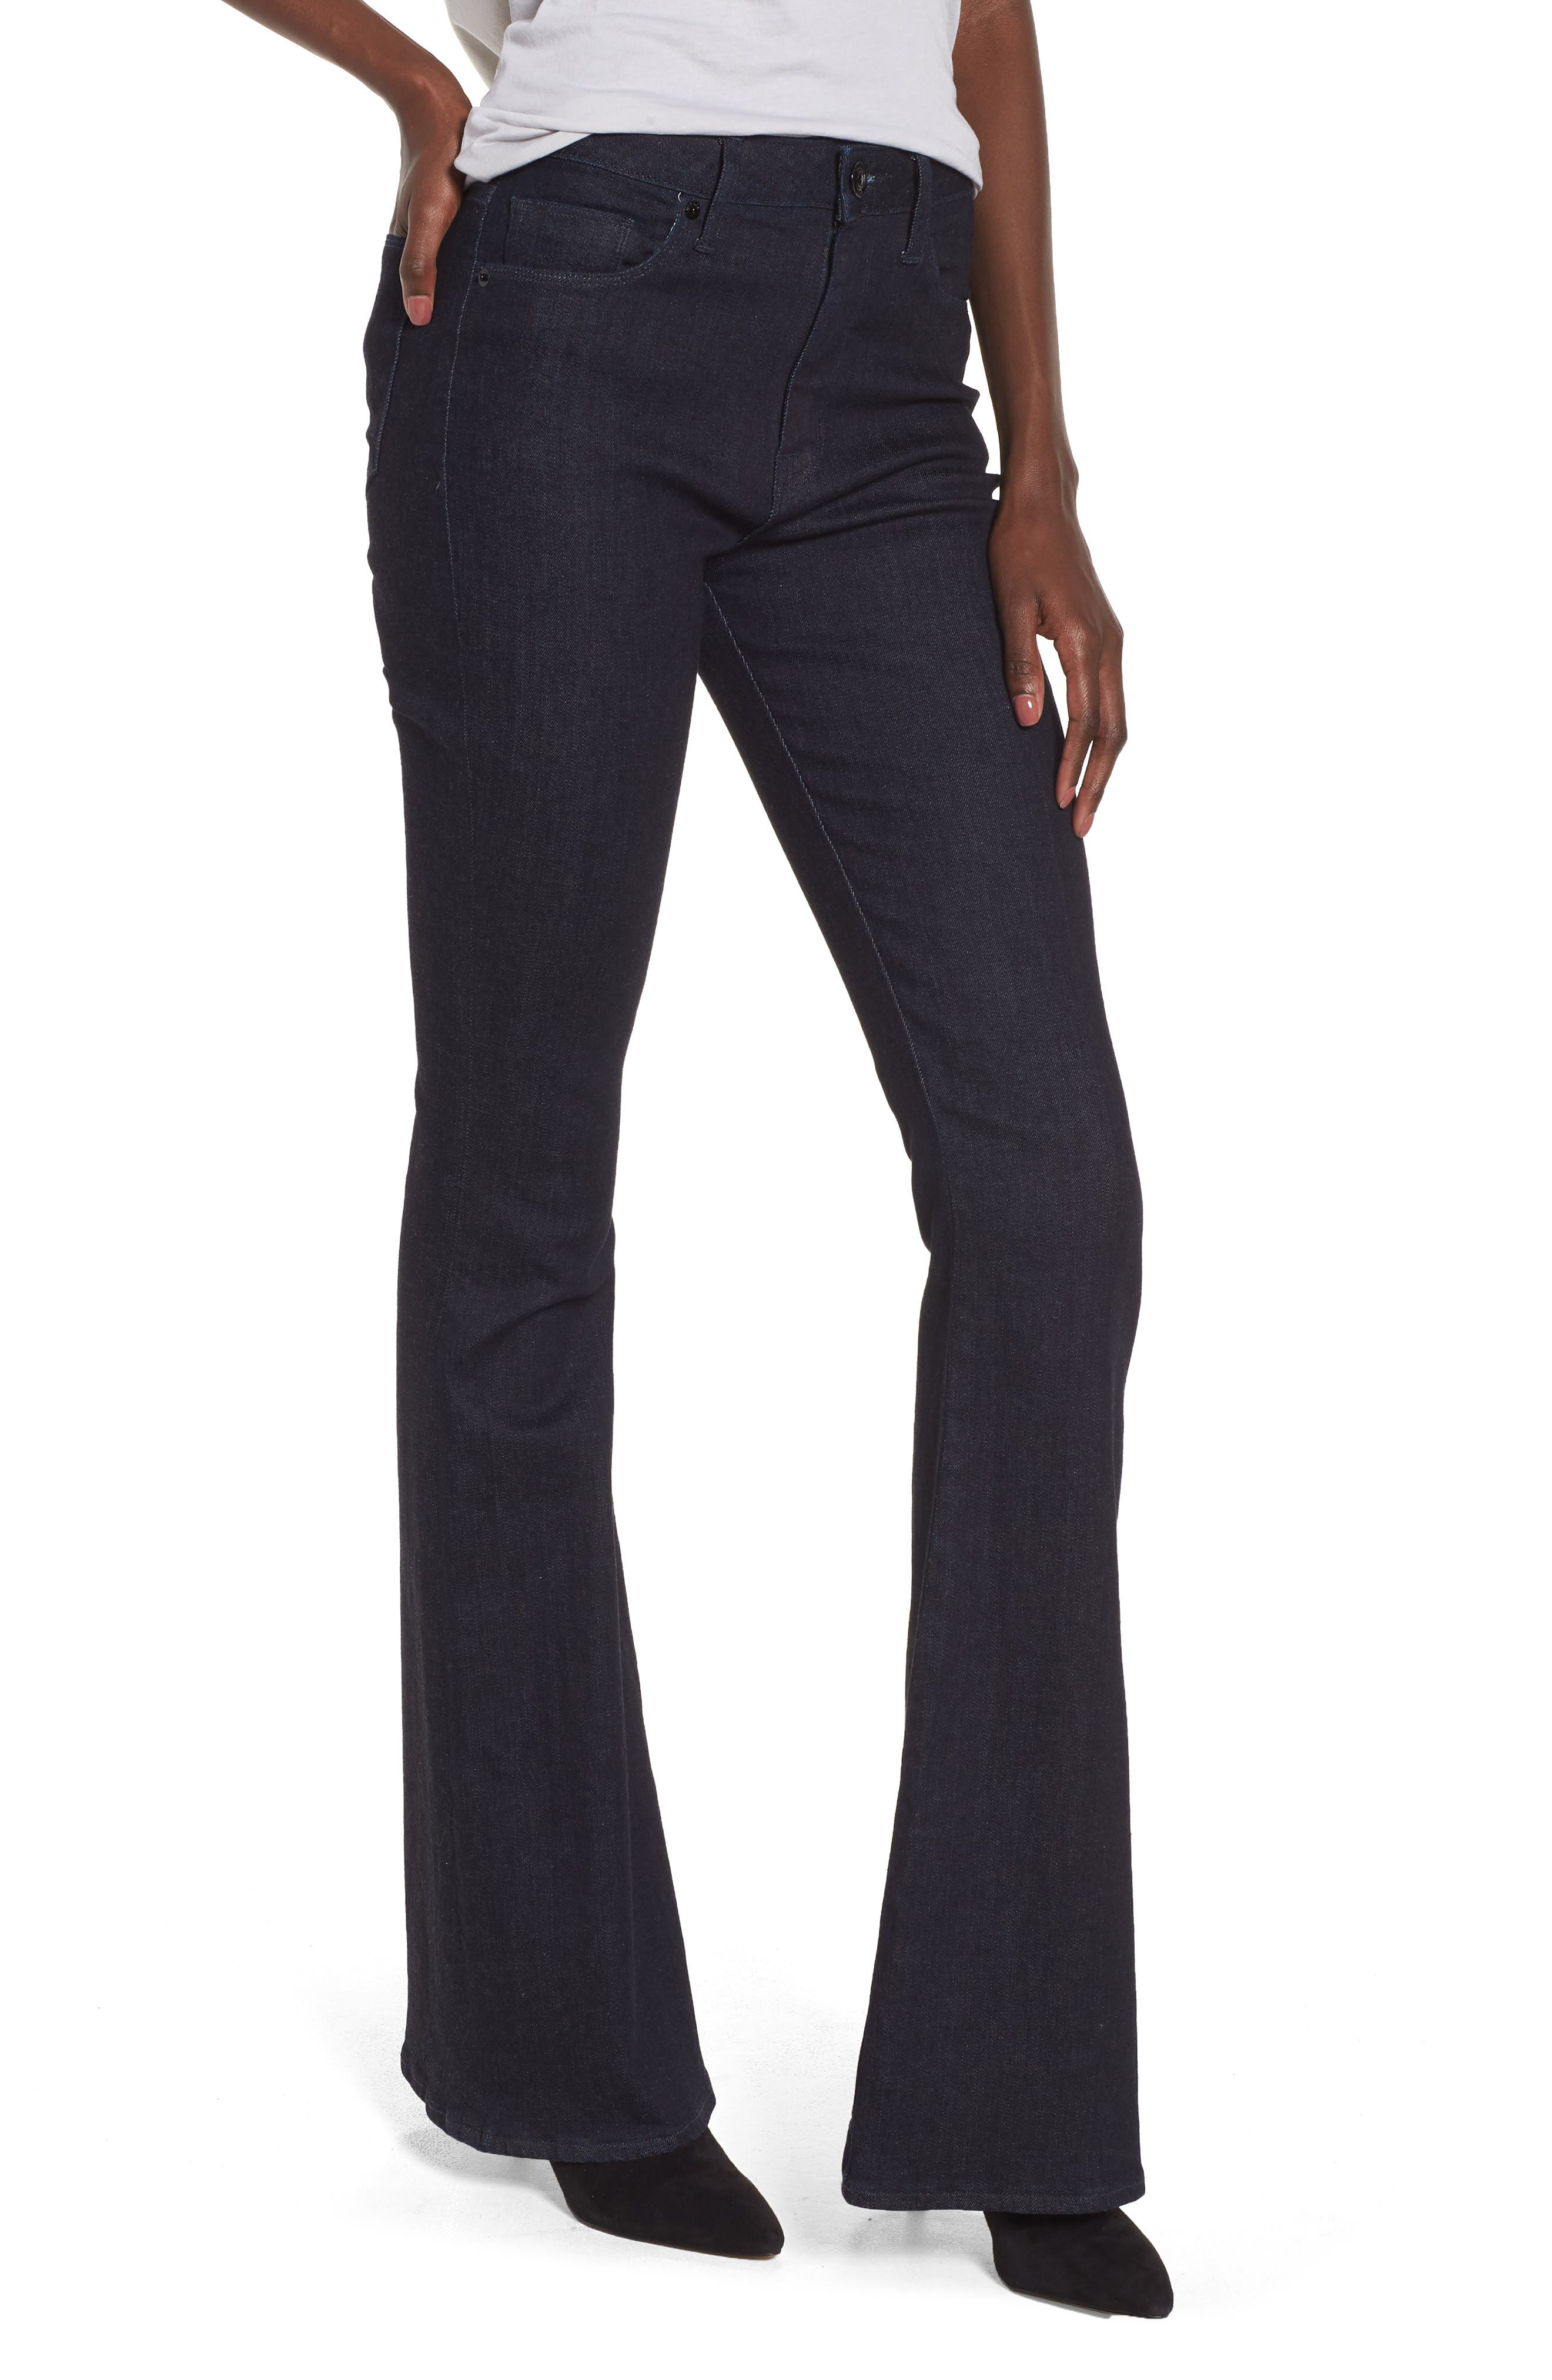 Holly High Waist Flare Jeans,                         Main,                         color, INFUSE